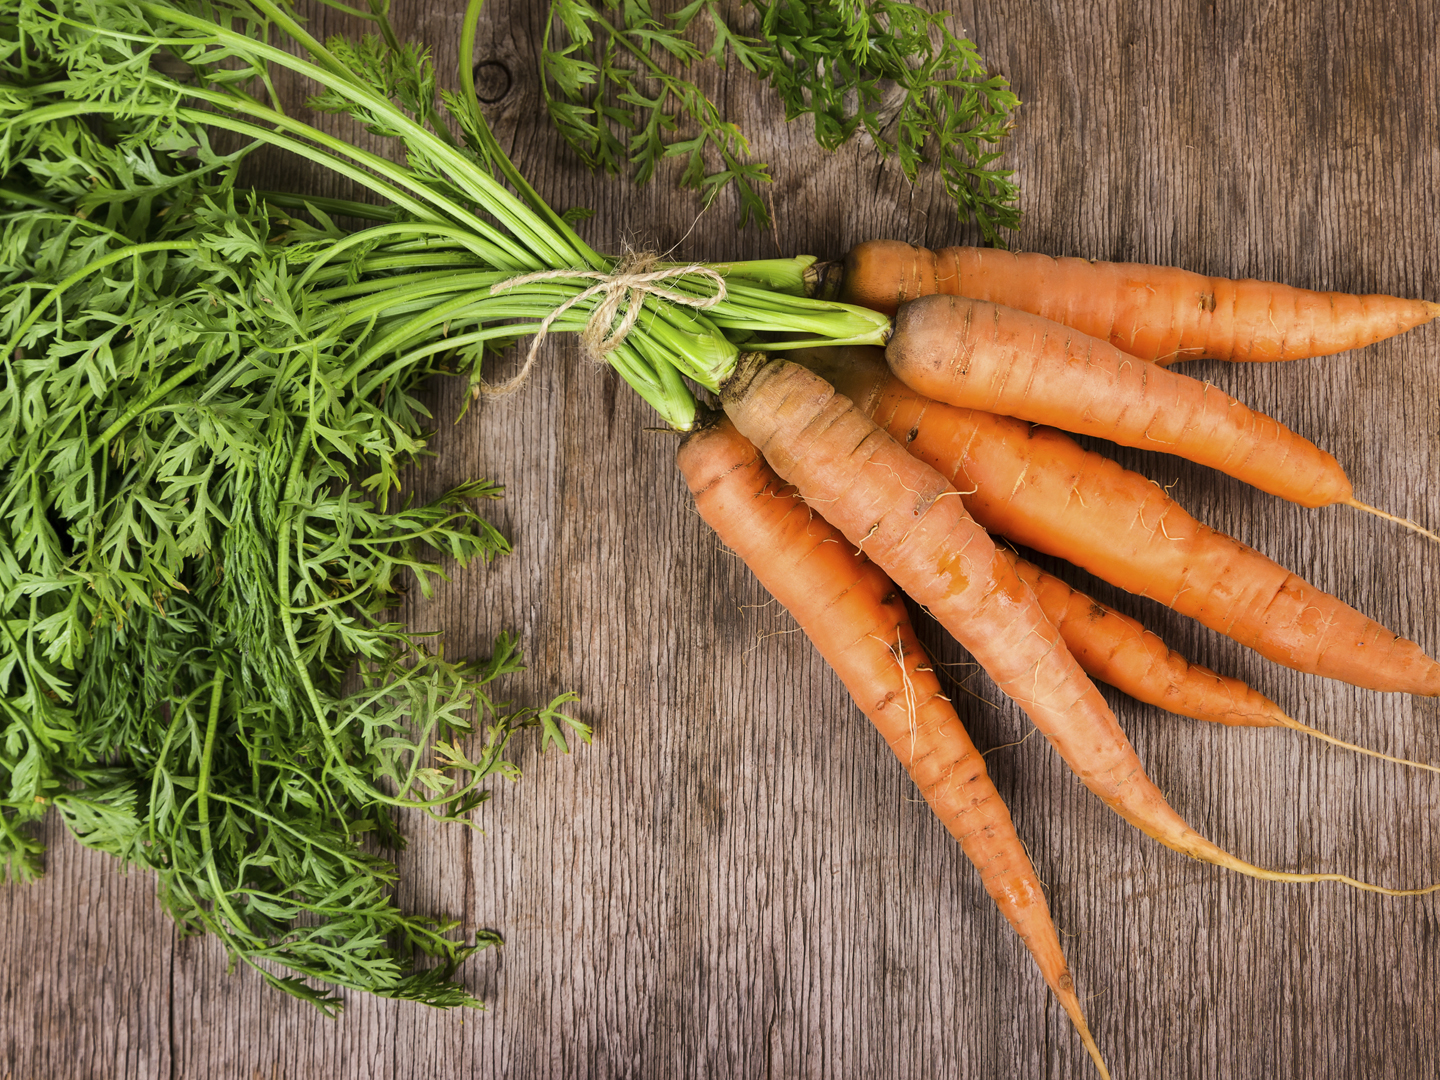 Baby Carrots Bad For You Ask Dr Weil